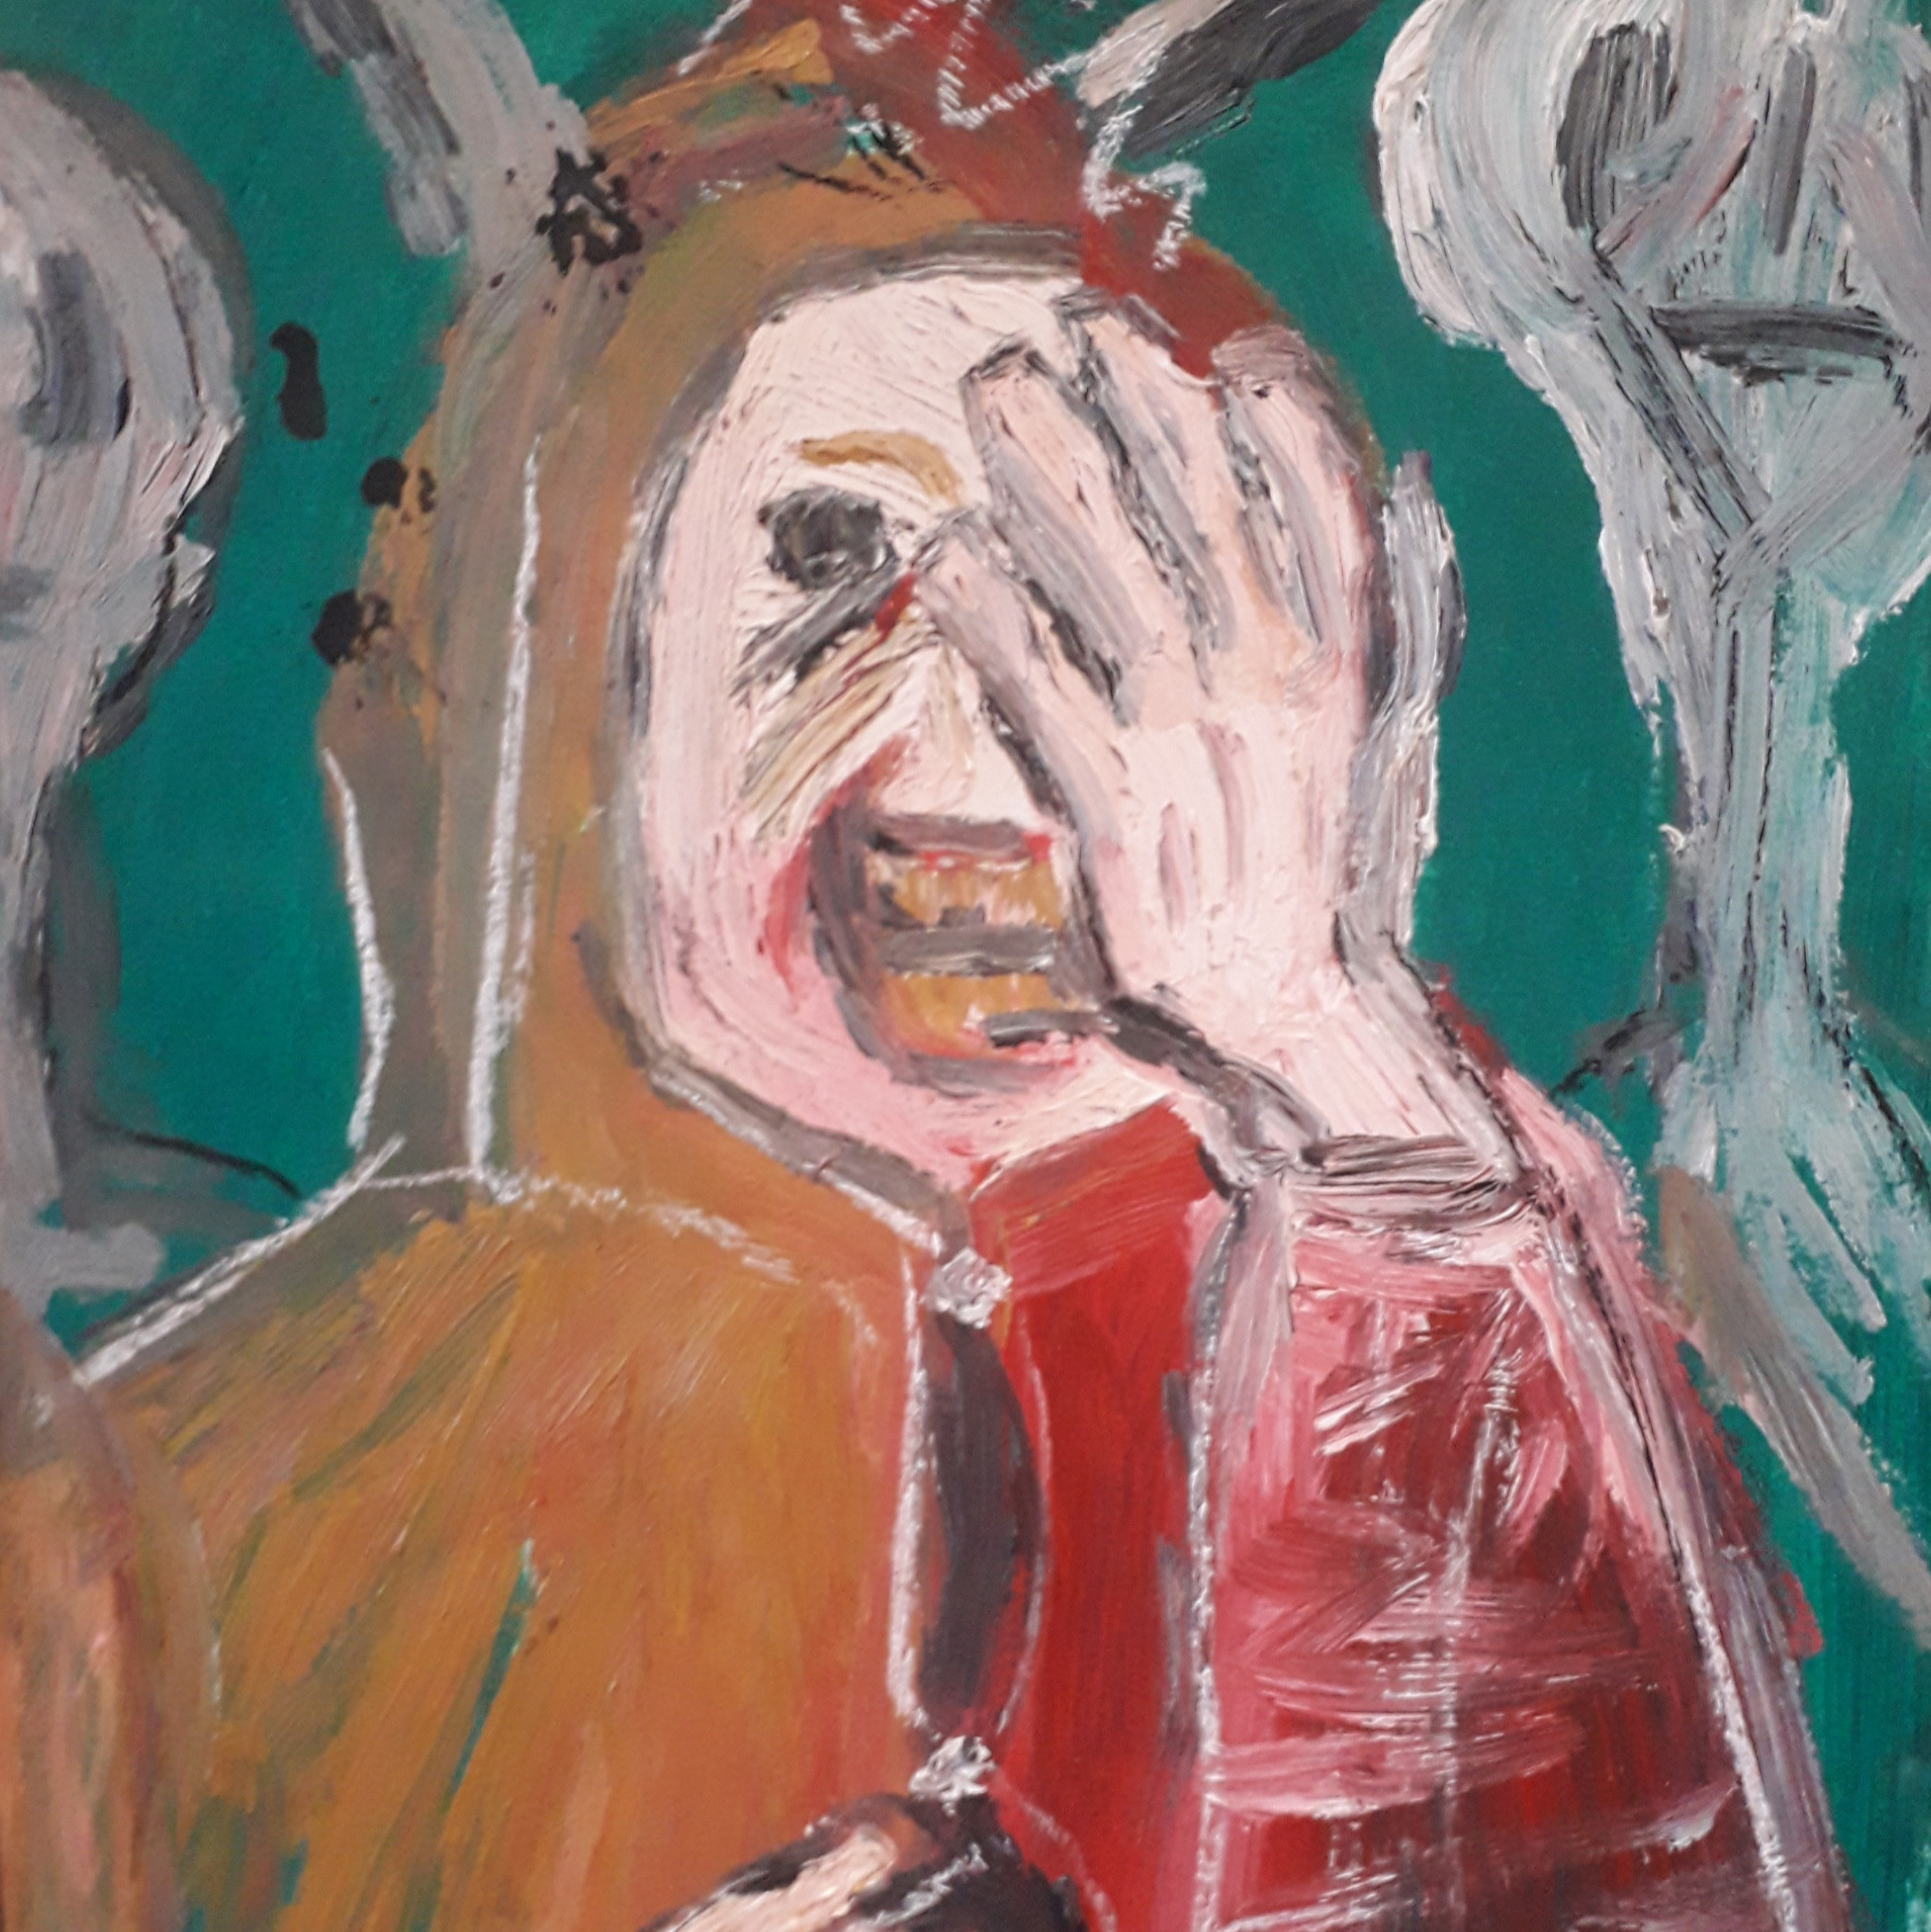 Laughing Fool Study - Oil on paper - 11×8 - £10.00